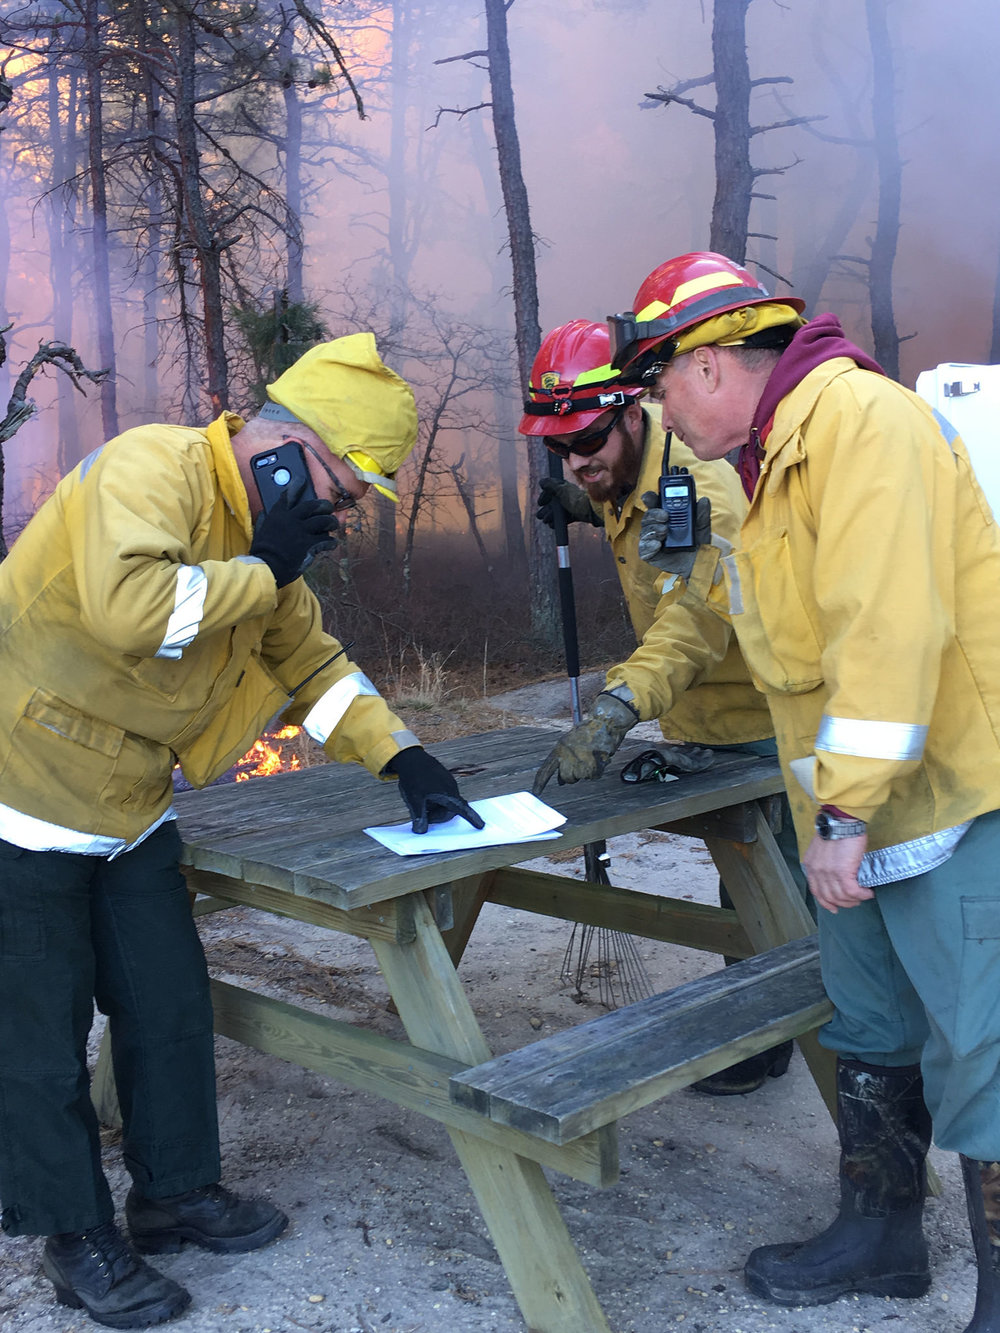 Tom Gerber, NAFSE Community Representative, at right, on a research burn in New Jersey's pinelands. Photo by Nick Skowronski.